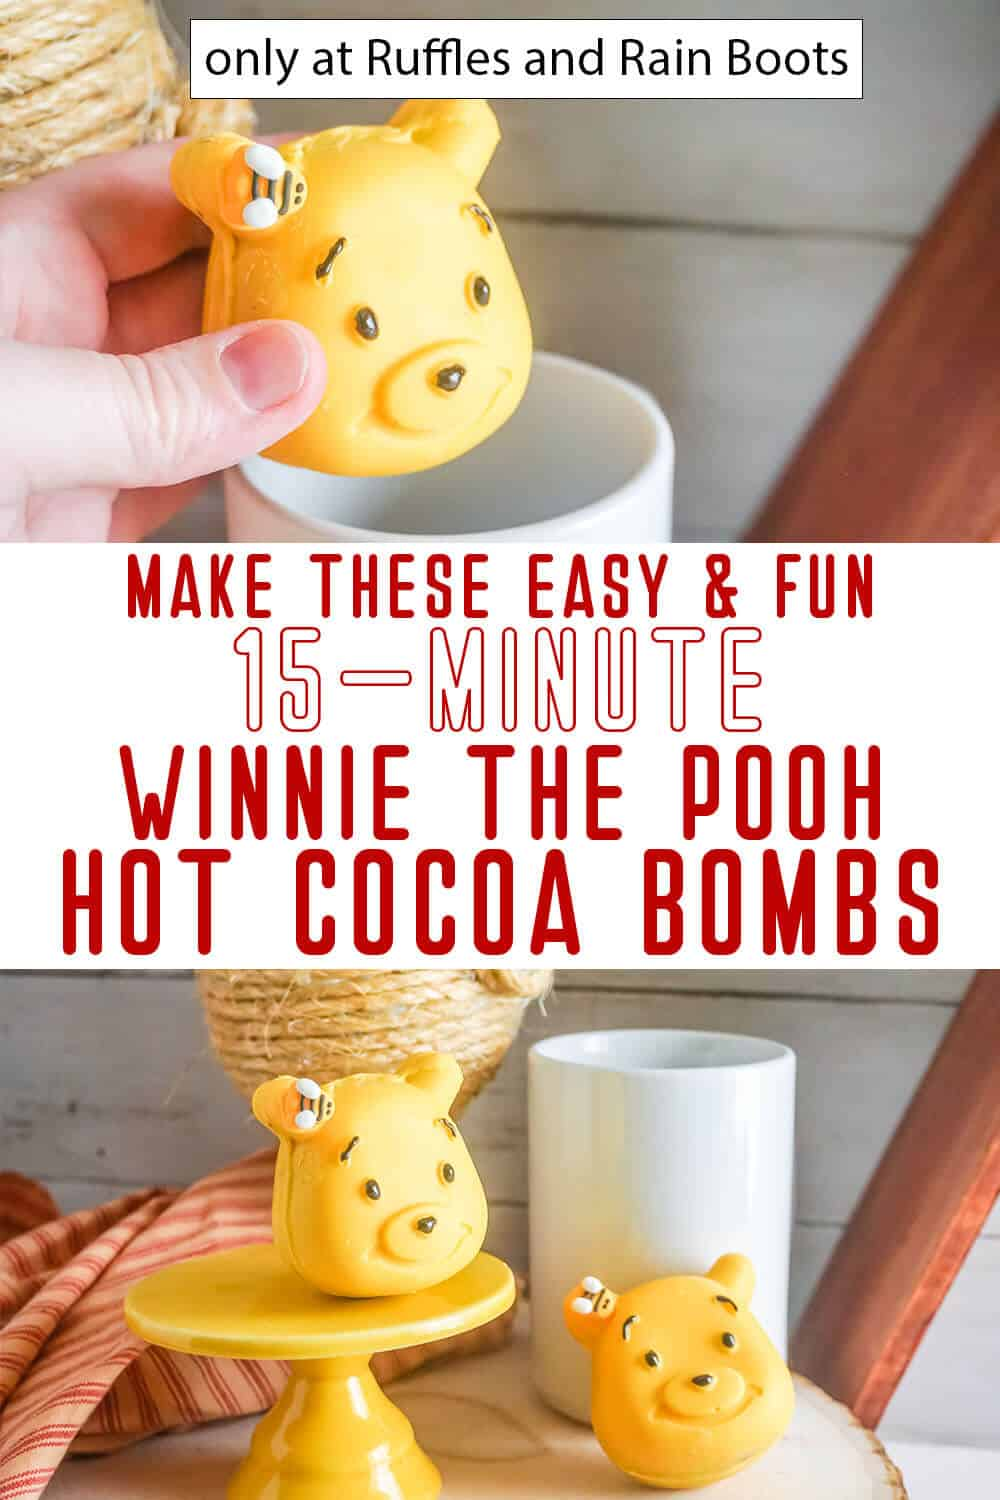 photo collage of DIY bear hot cocoa bombs with text which reads make these easy & fun 15-minute winnie the pooh hot cocoa bombs